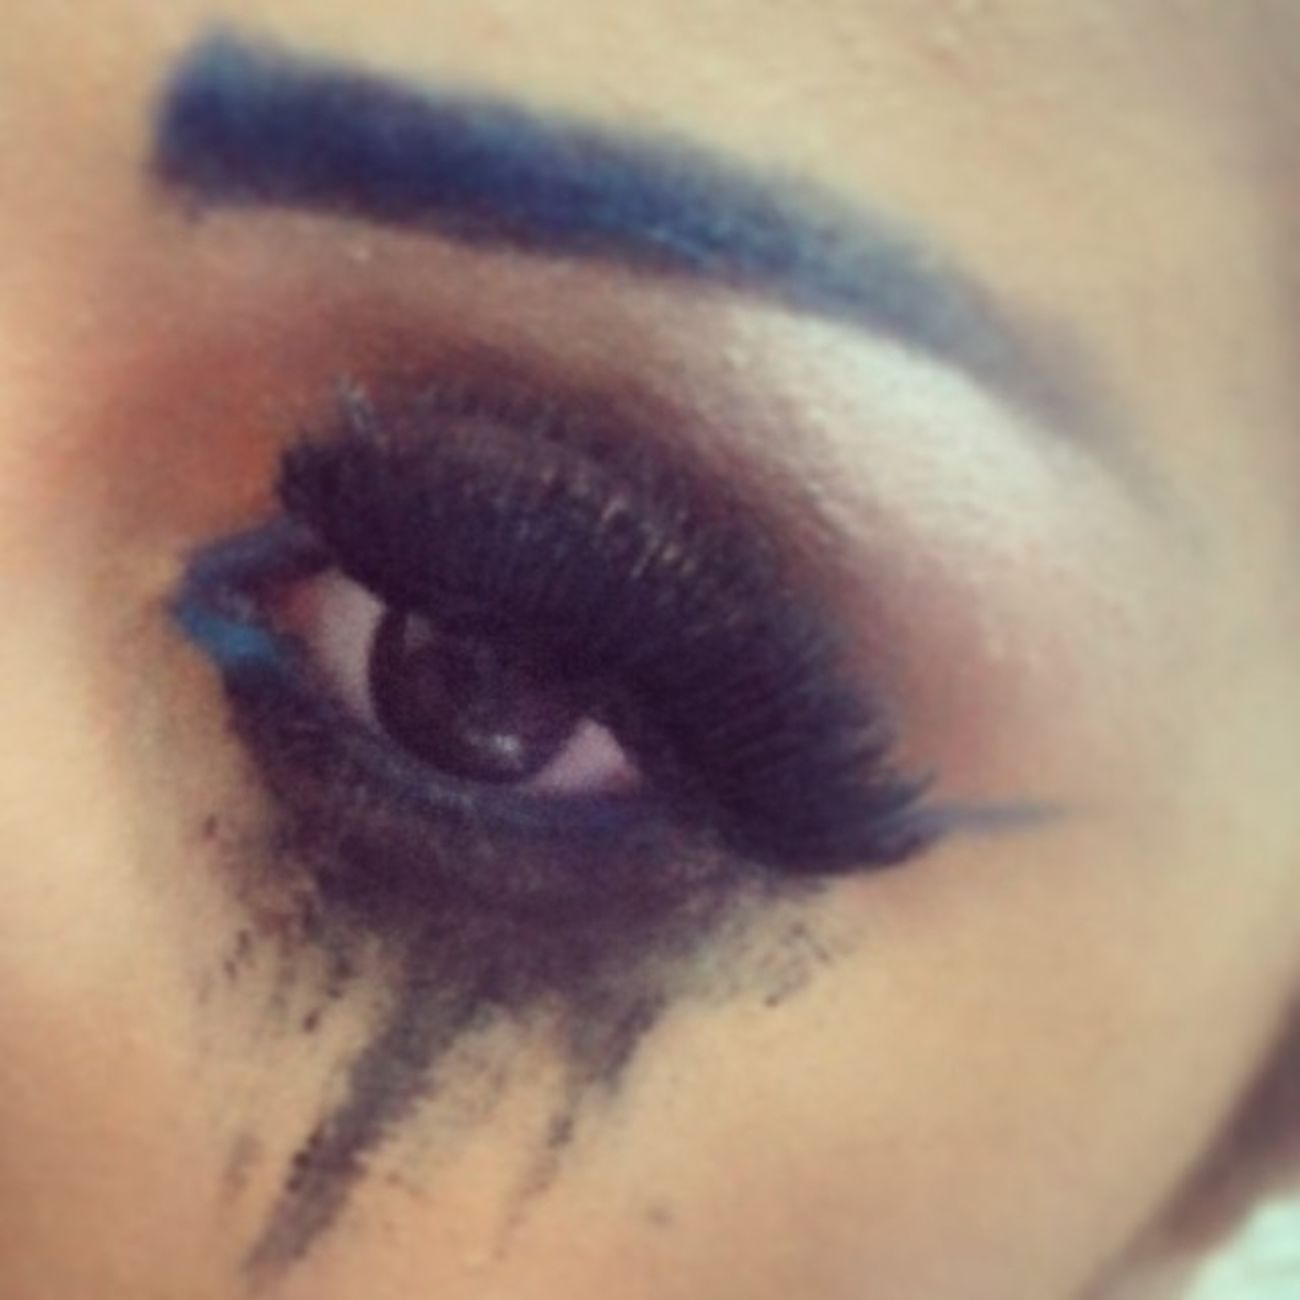 Dirty_makeup Maccosmetics Makeup Black eyeliner fake eyelashes blue eyebrows love drama